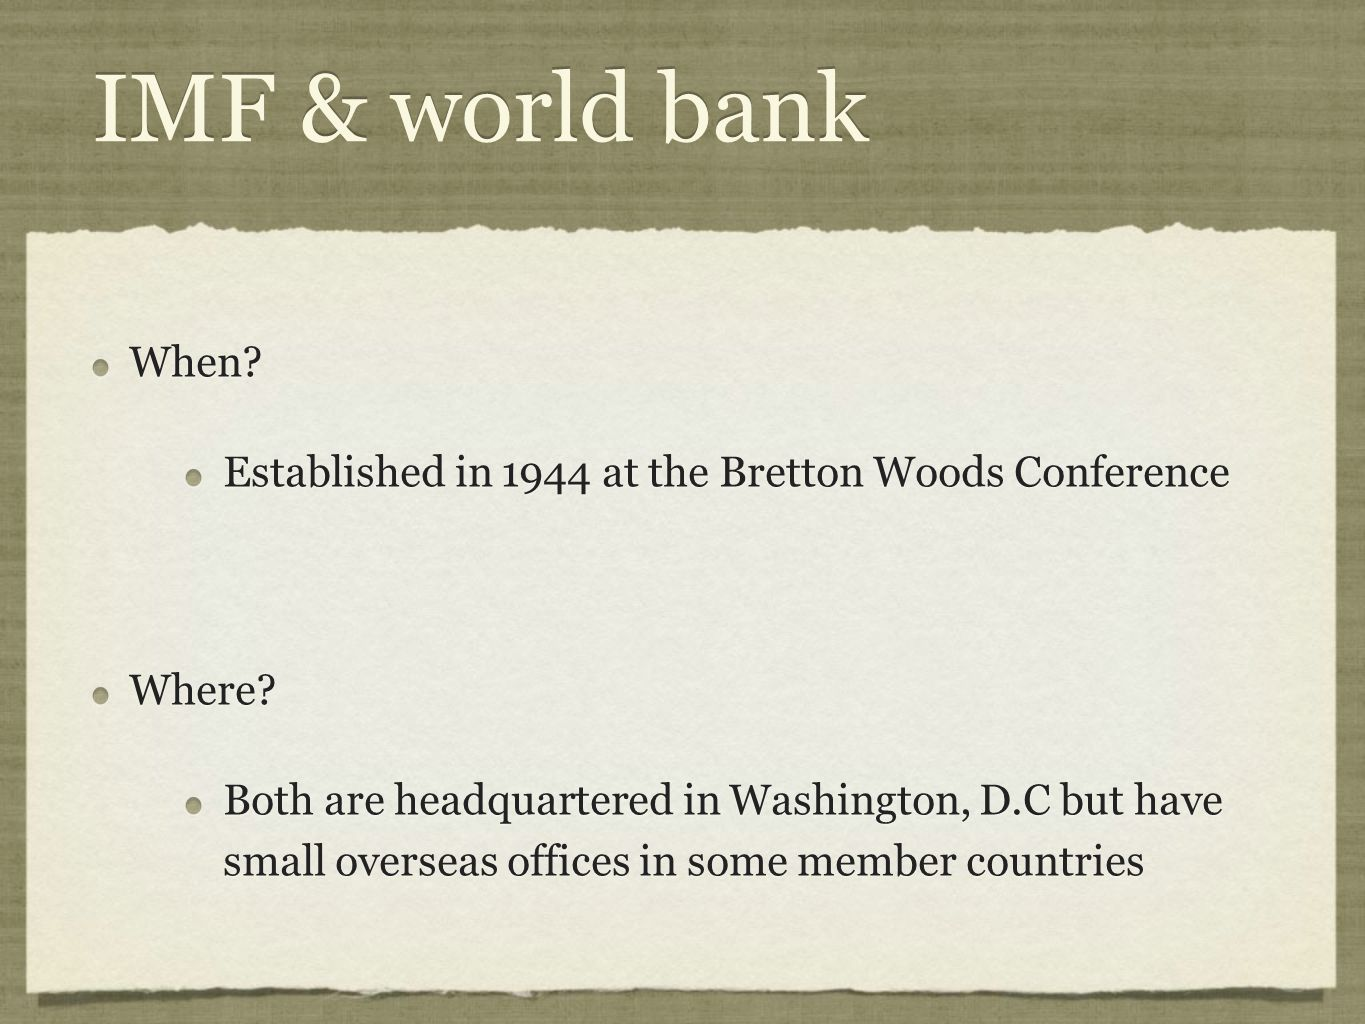 IMF & world bank When? Established in 1944 at the Bretton Woods Conference Where? Both are headquartered in Washington, D.C but have small overseas of